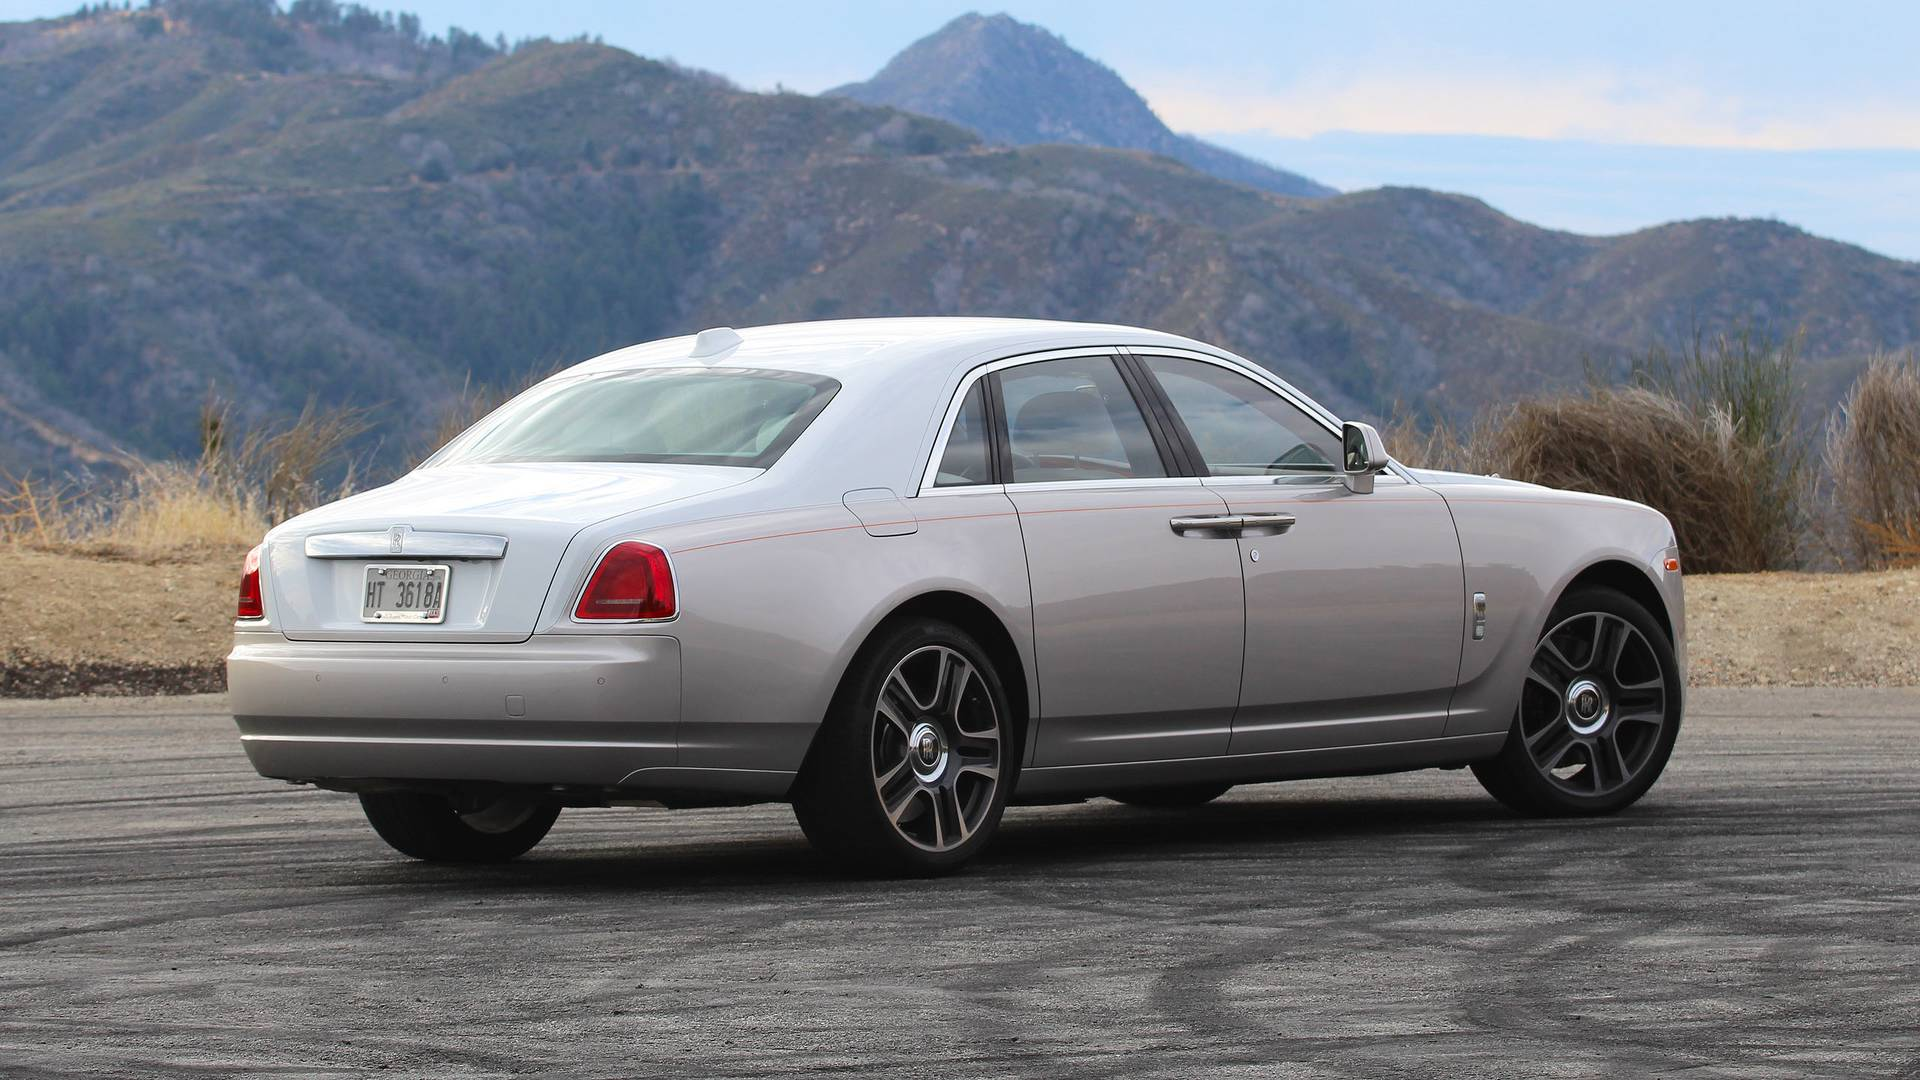 355f4d660e61 2018 Rolls-Royce Ghost Review  Living Like The One-Percent